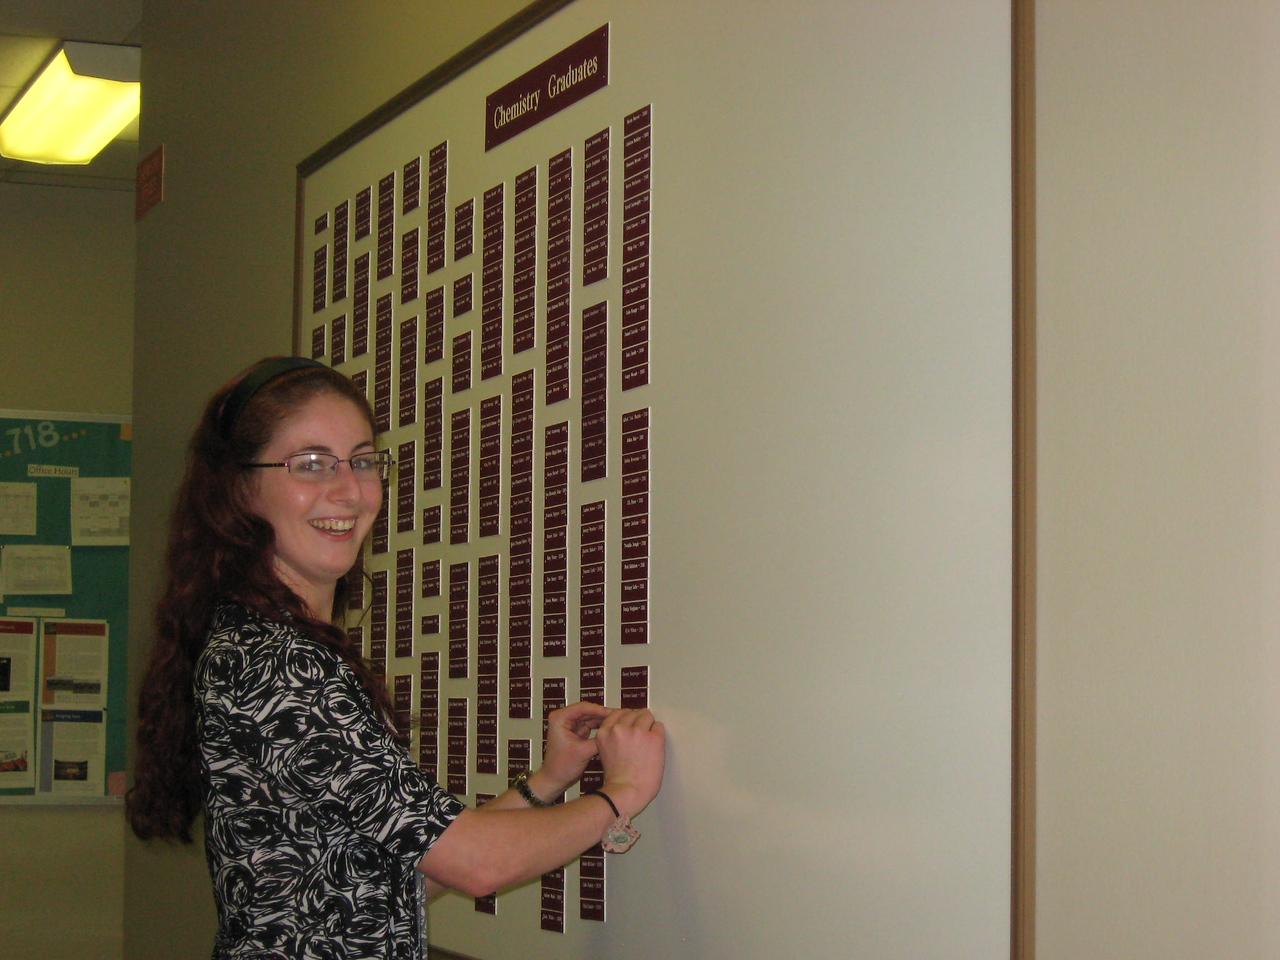 Michelle DuBois putting her nameplate on the Chemistry Graduates board.